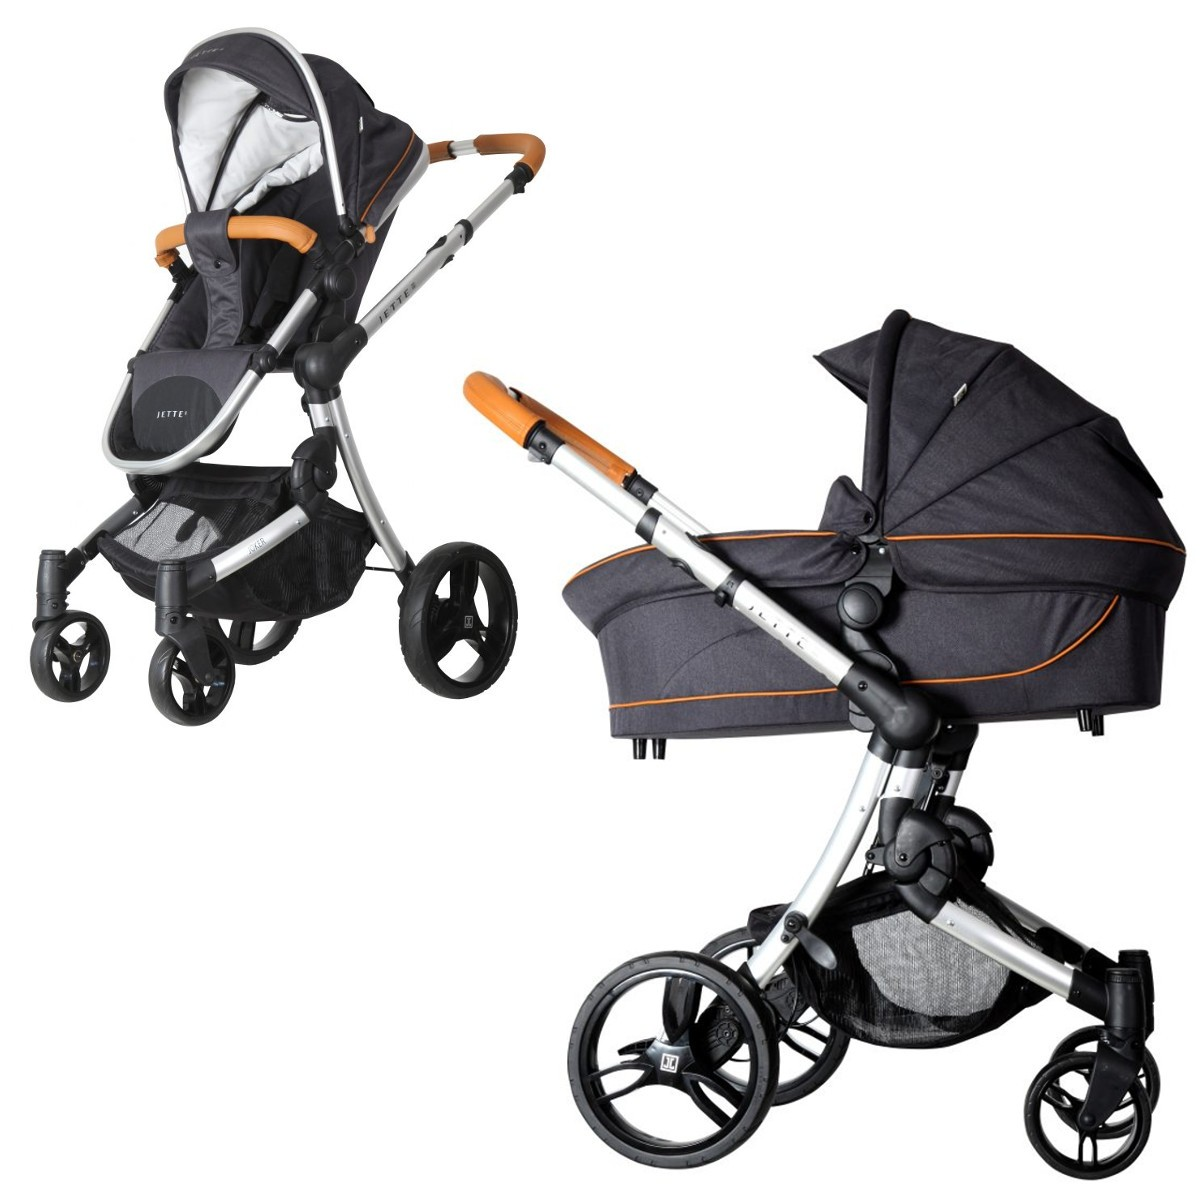 jette joker kombi kinderwagen 2in1 mit babywanne sportwagenaufsatz buggy. Black Bedroom Furniture Sets. Home Design Ideas